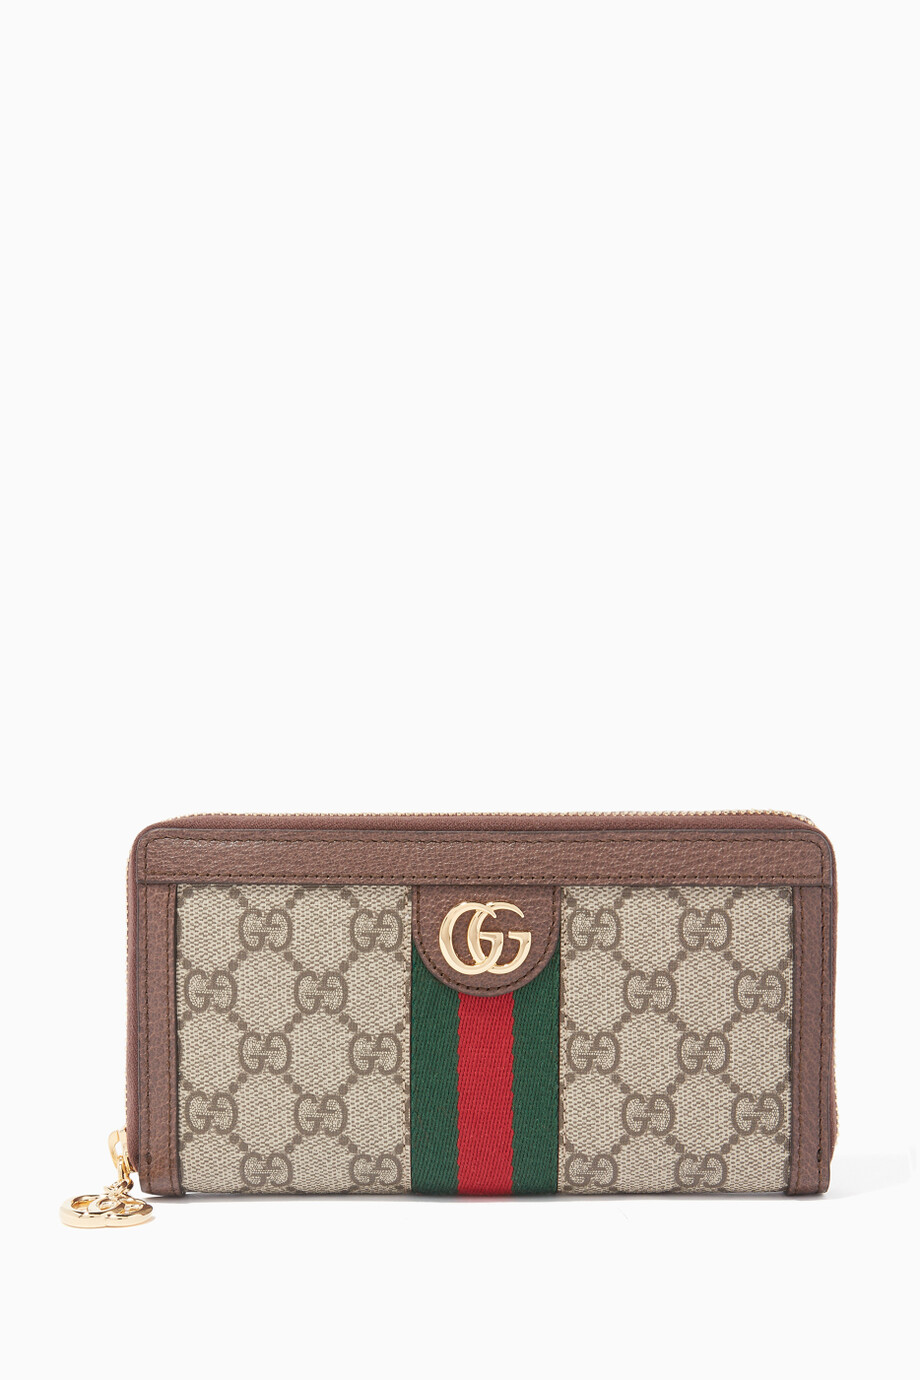 be2e6c88a7c49e Shop Gucci Brown Beige Ophidia GG Zip Around Wallet for Women ...